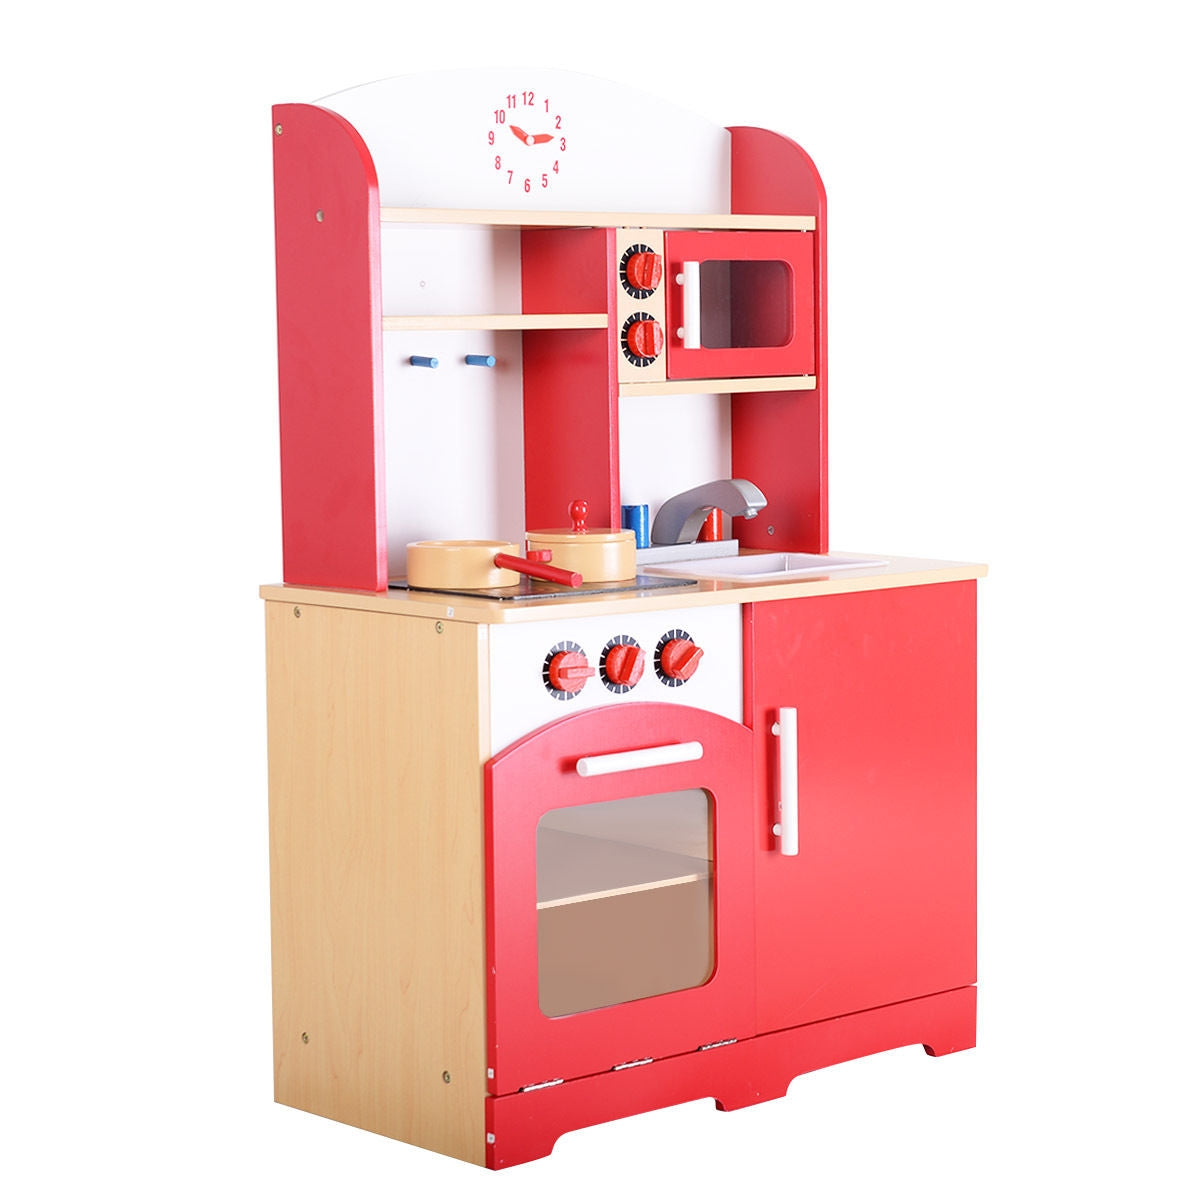 Kids Cooking Pretend Play Toy Kitchen Set C137 - Baby World Inc